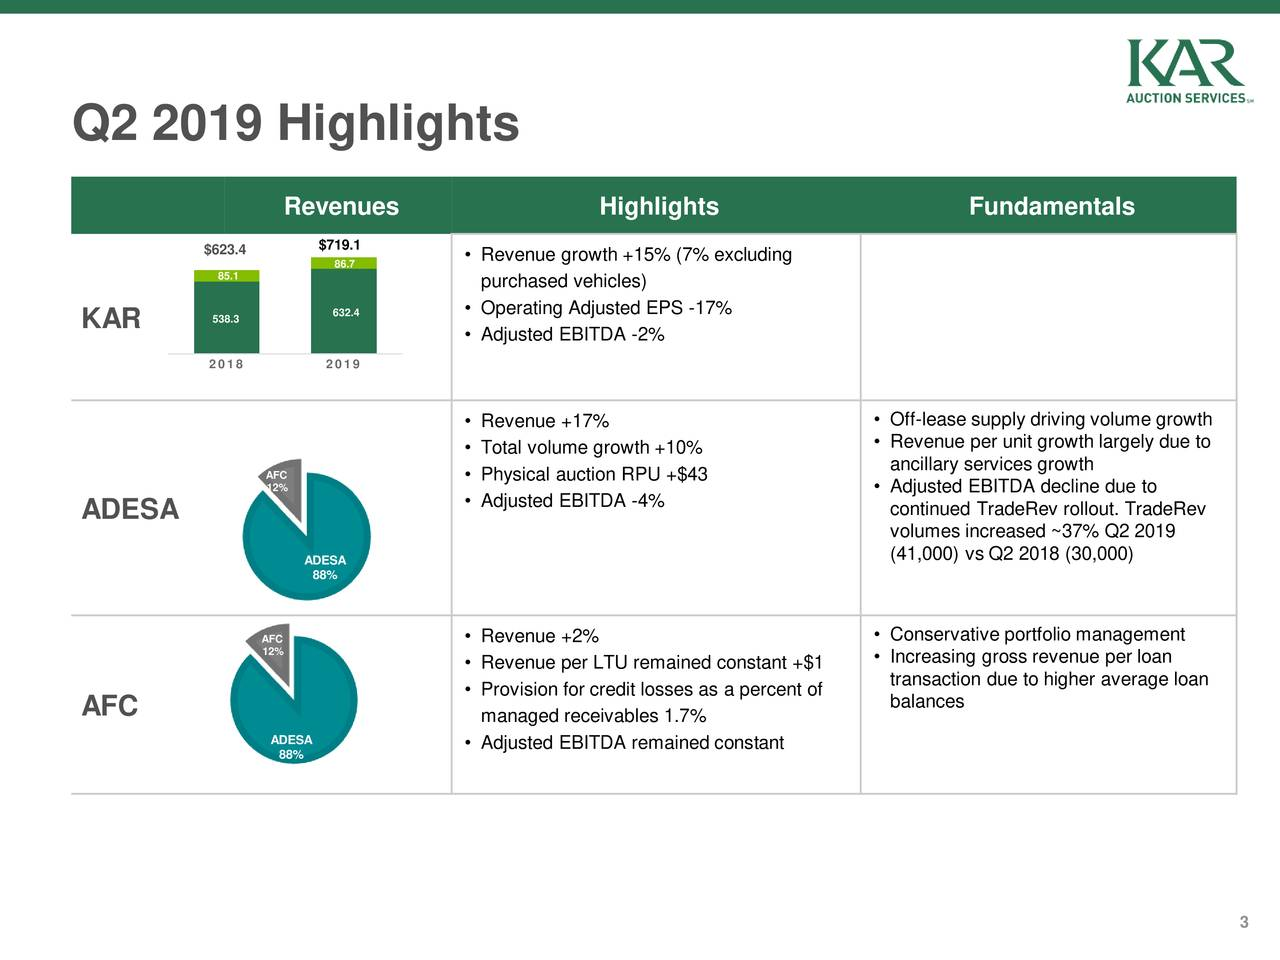 Q2 2019 Highlights